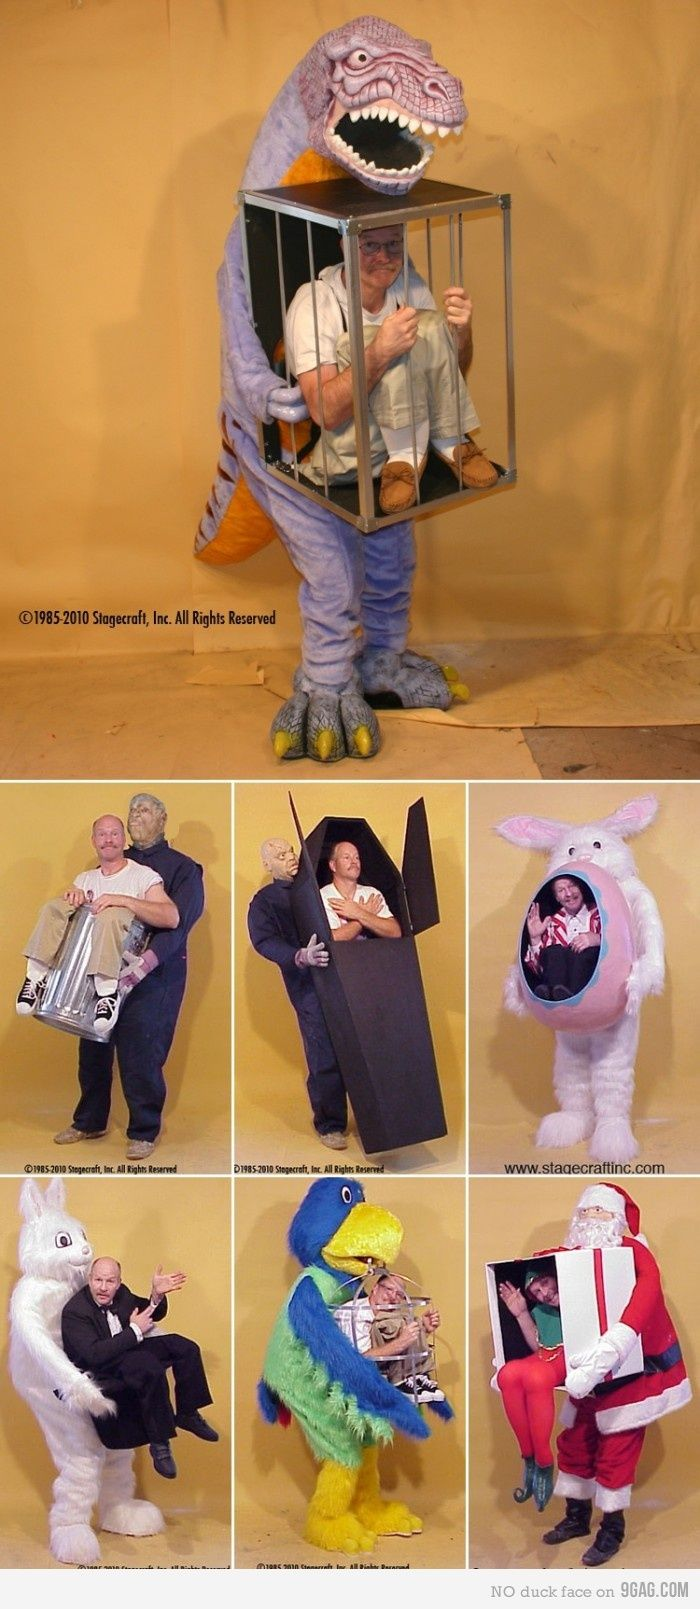 adult costumes halloween DIY crafts ideas. funny but probably a bitch to walk around with